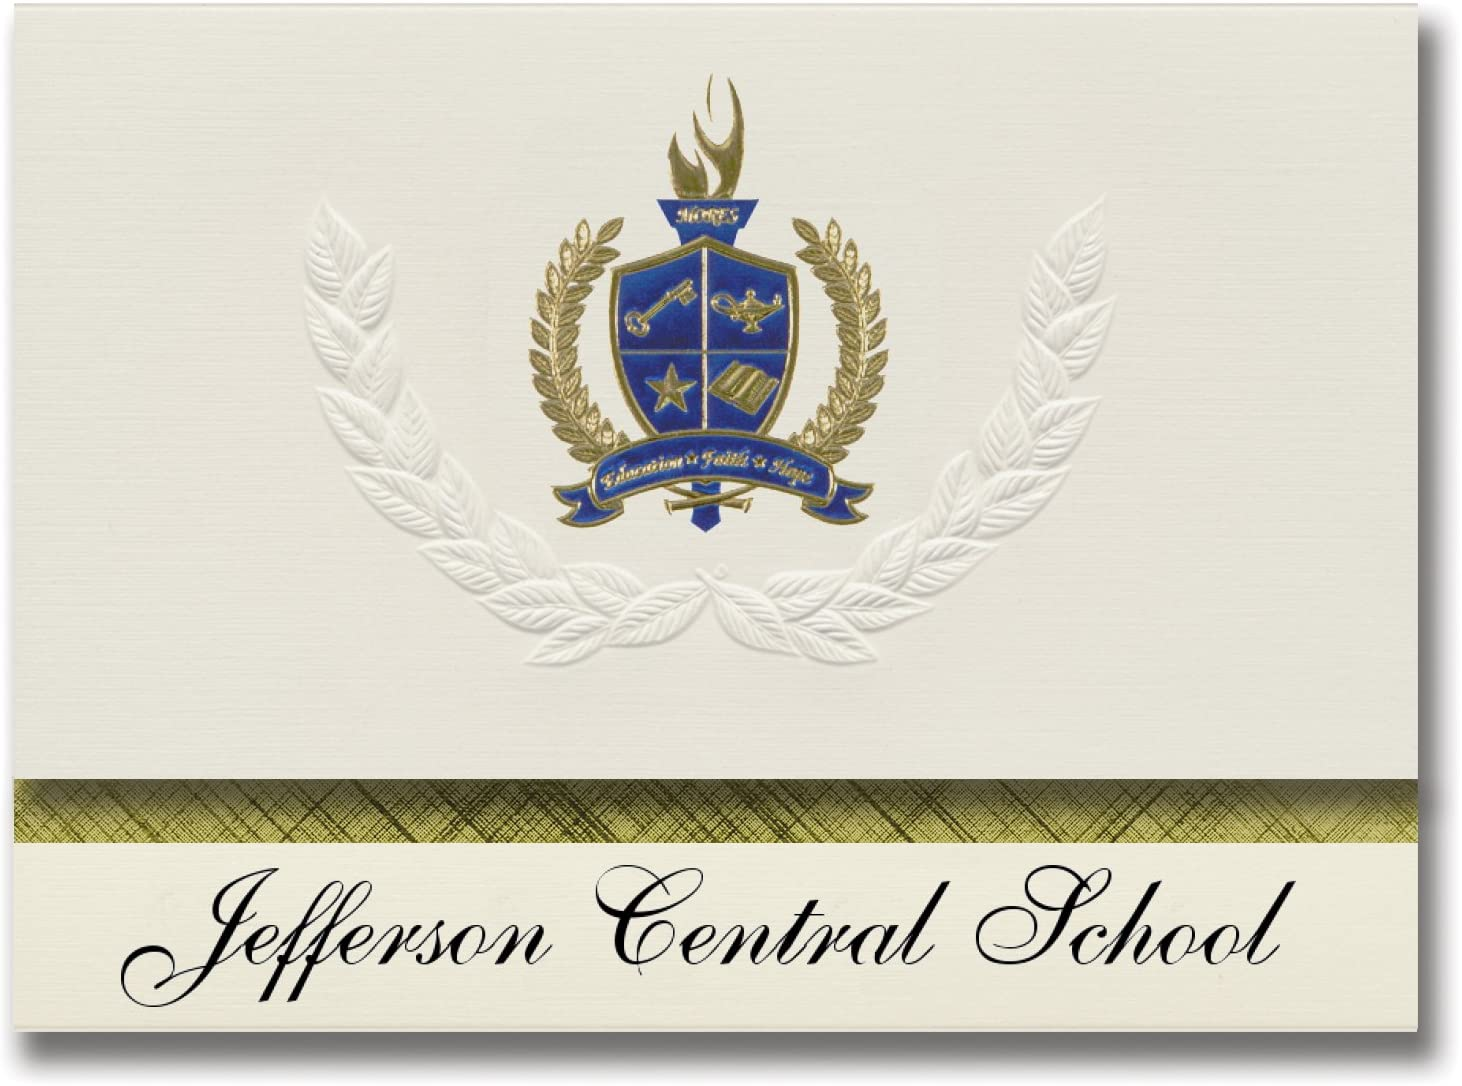 Signature Announcements Jefferson Central School (Jefferson, NY) Graduation Announcements, Presidential style, Basic package of 25 with Gold & Blue Metallic Foil seal